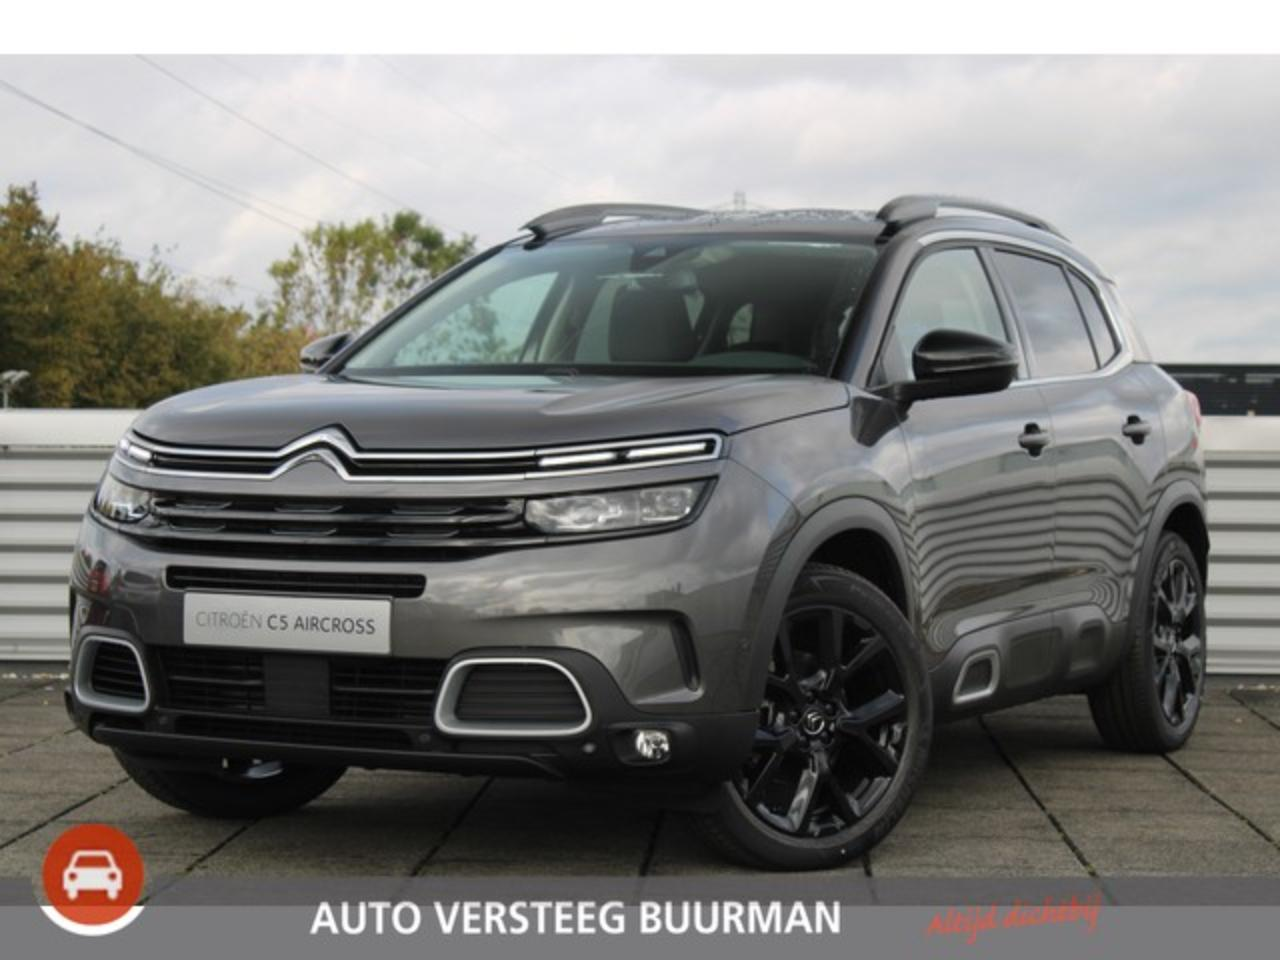 Citroën C5 AIRCROSS 1.2 PureTech Business Plus 24 maanden Private Leas